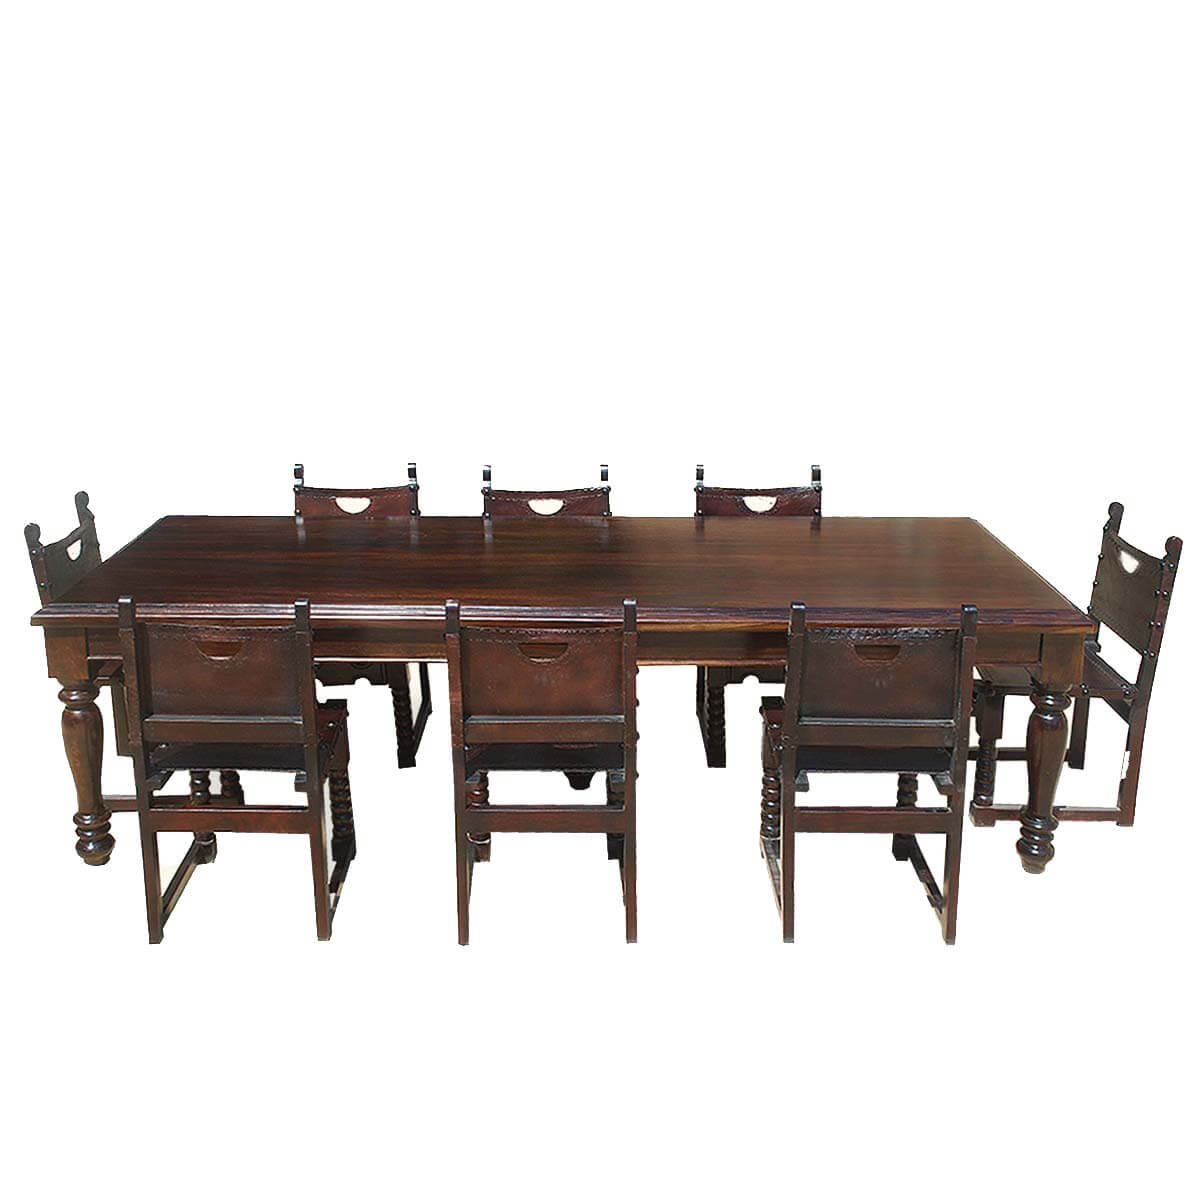 Dining Room Table And 8 Chairs Of Large Rustic Solid Wood Dining Room Table W 8 Leather